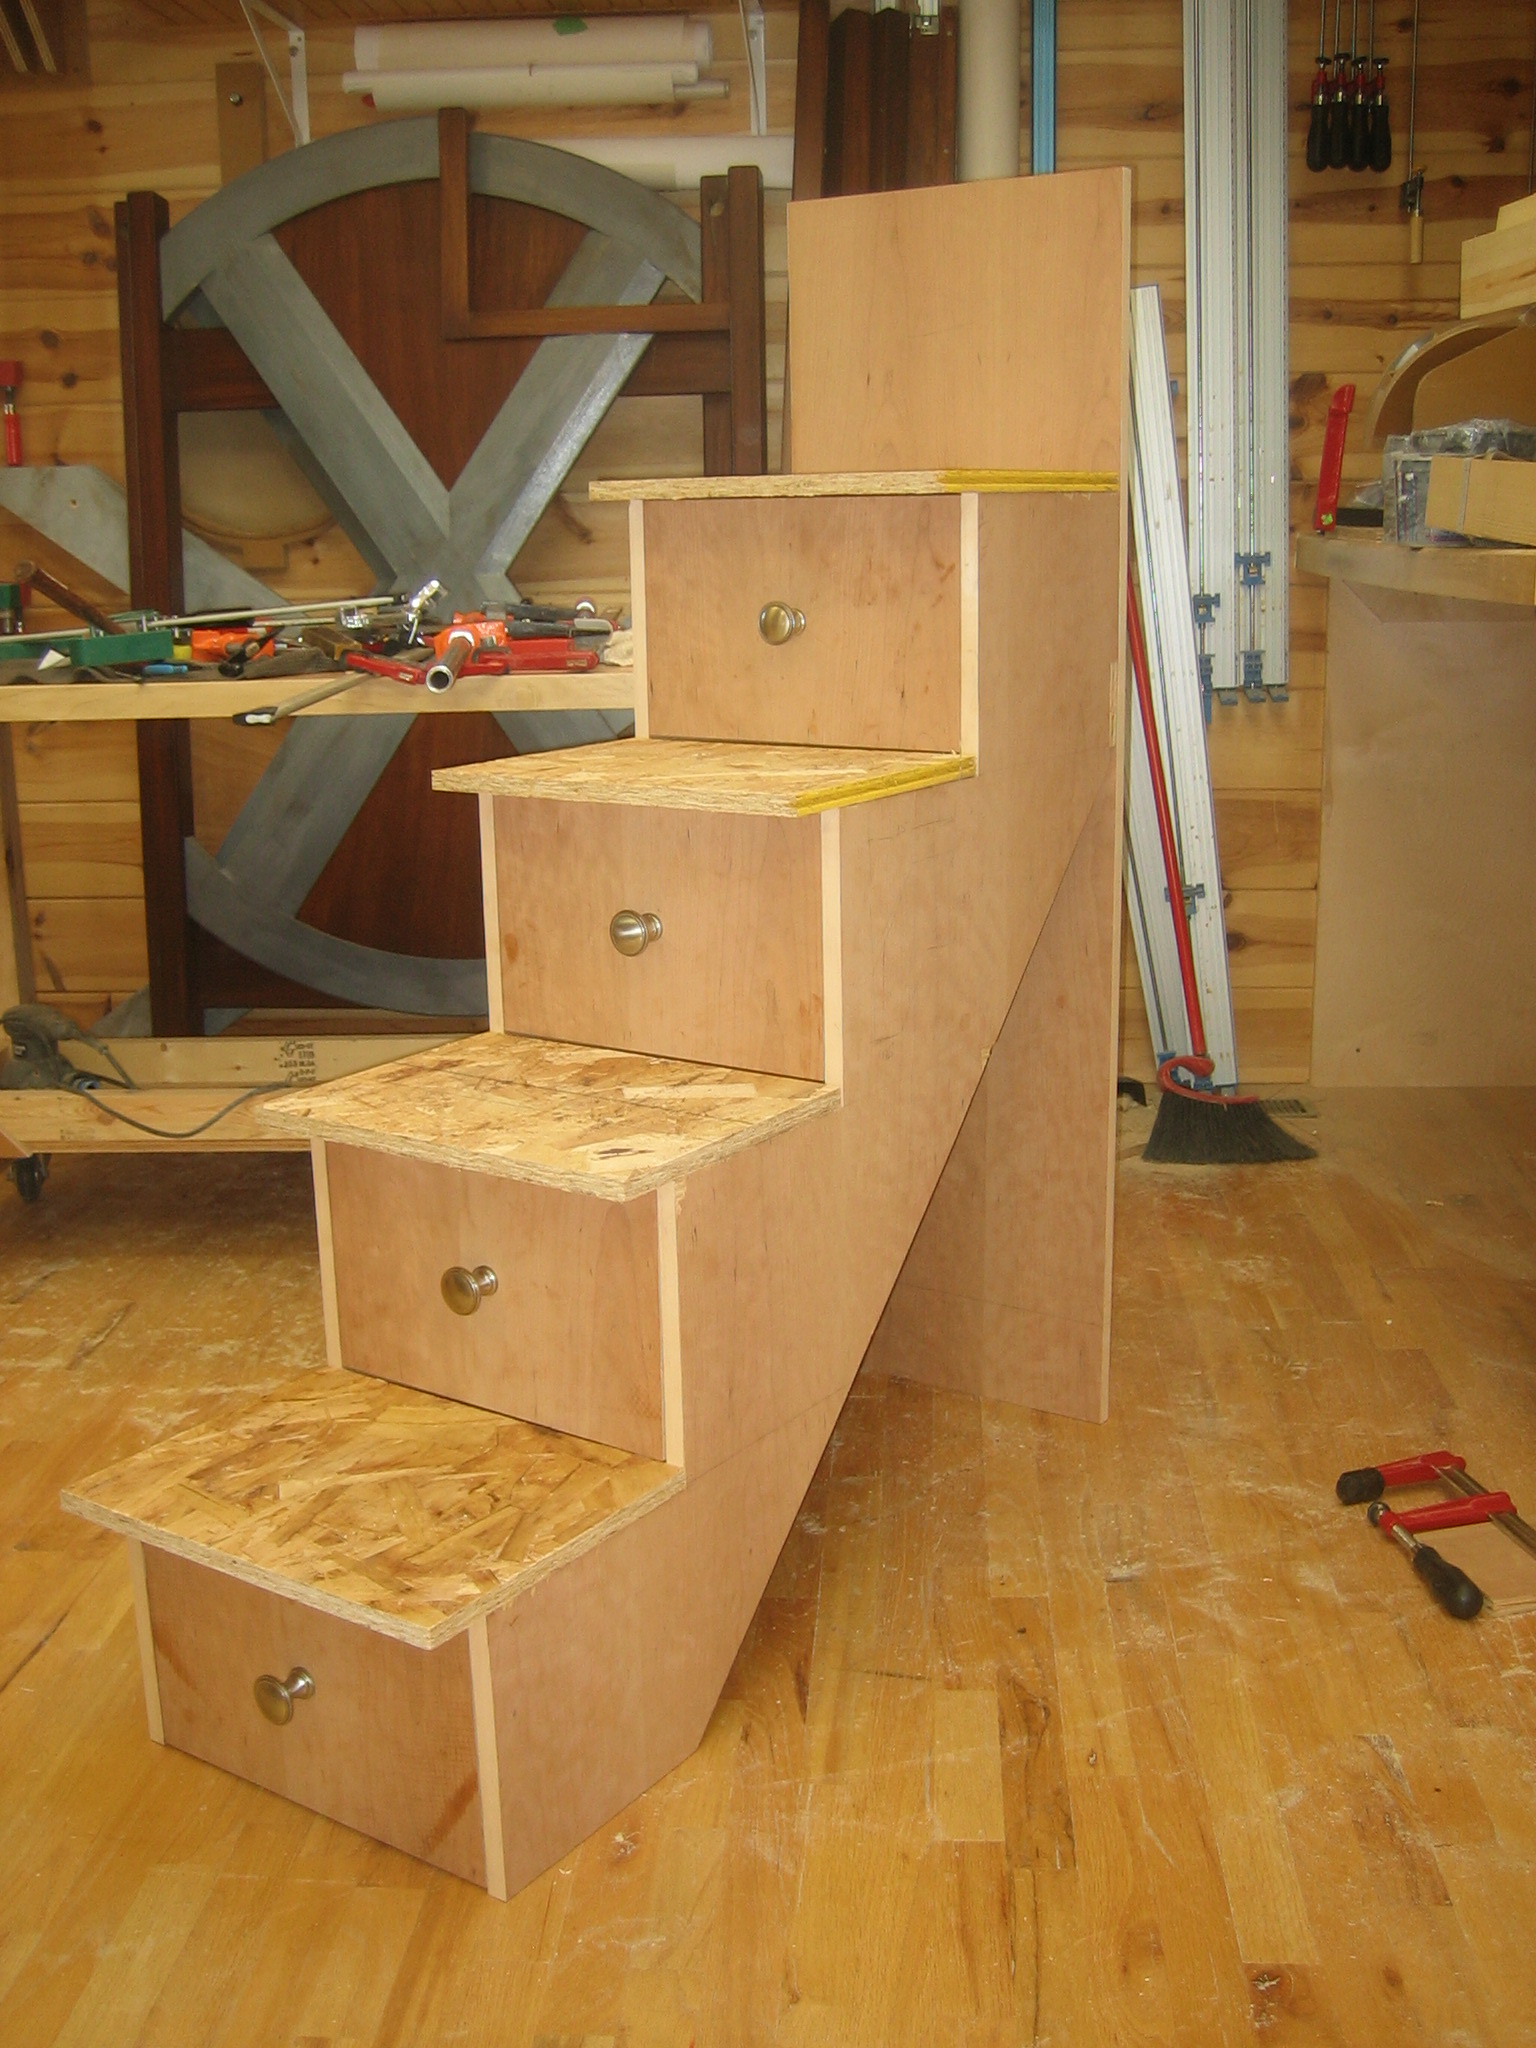 Building the stairs and installation spackle sawdust - Bunk bed with drawer steps ...